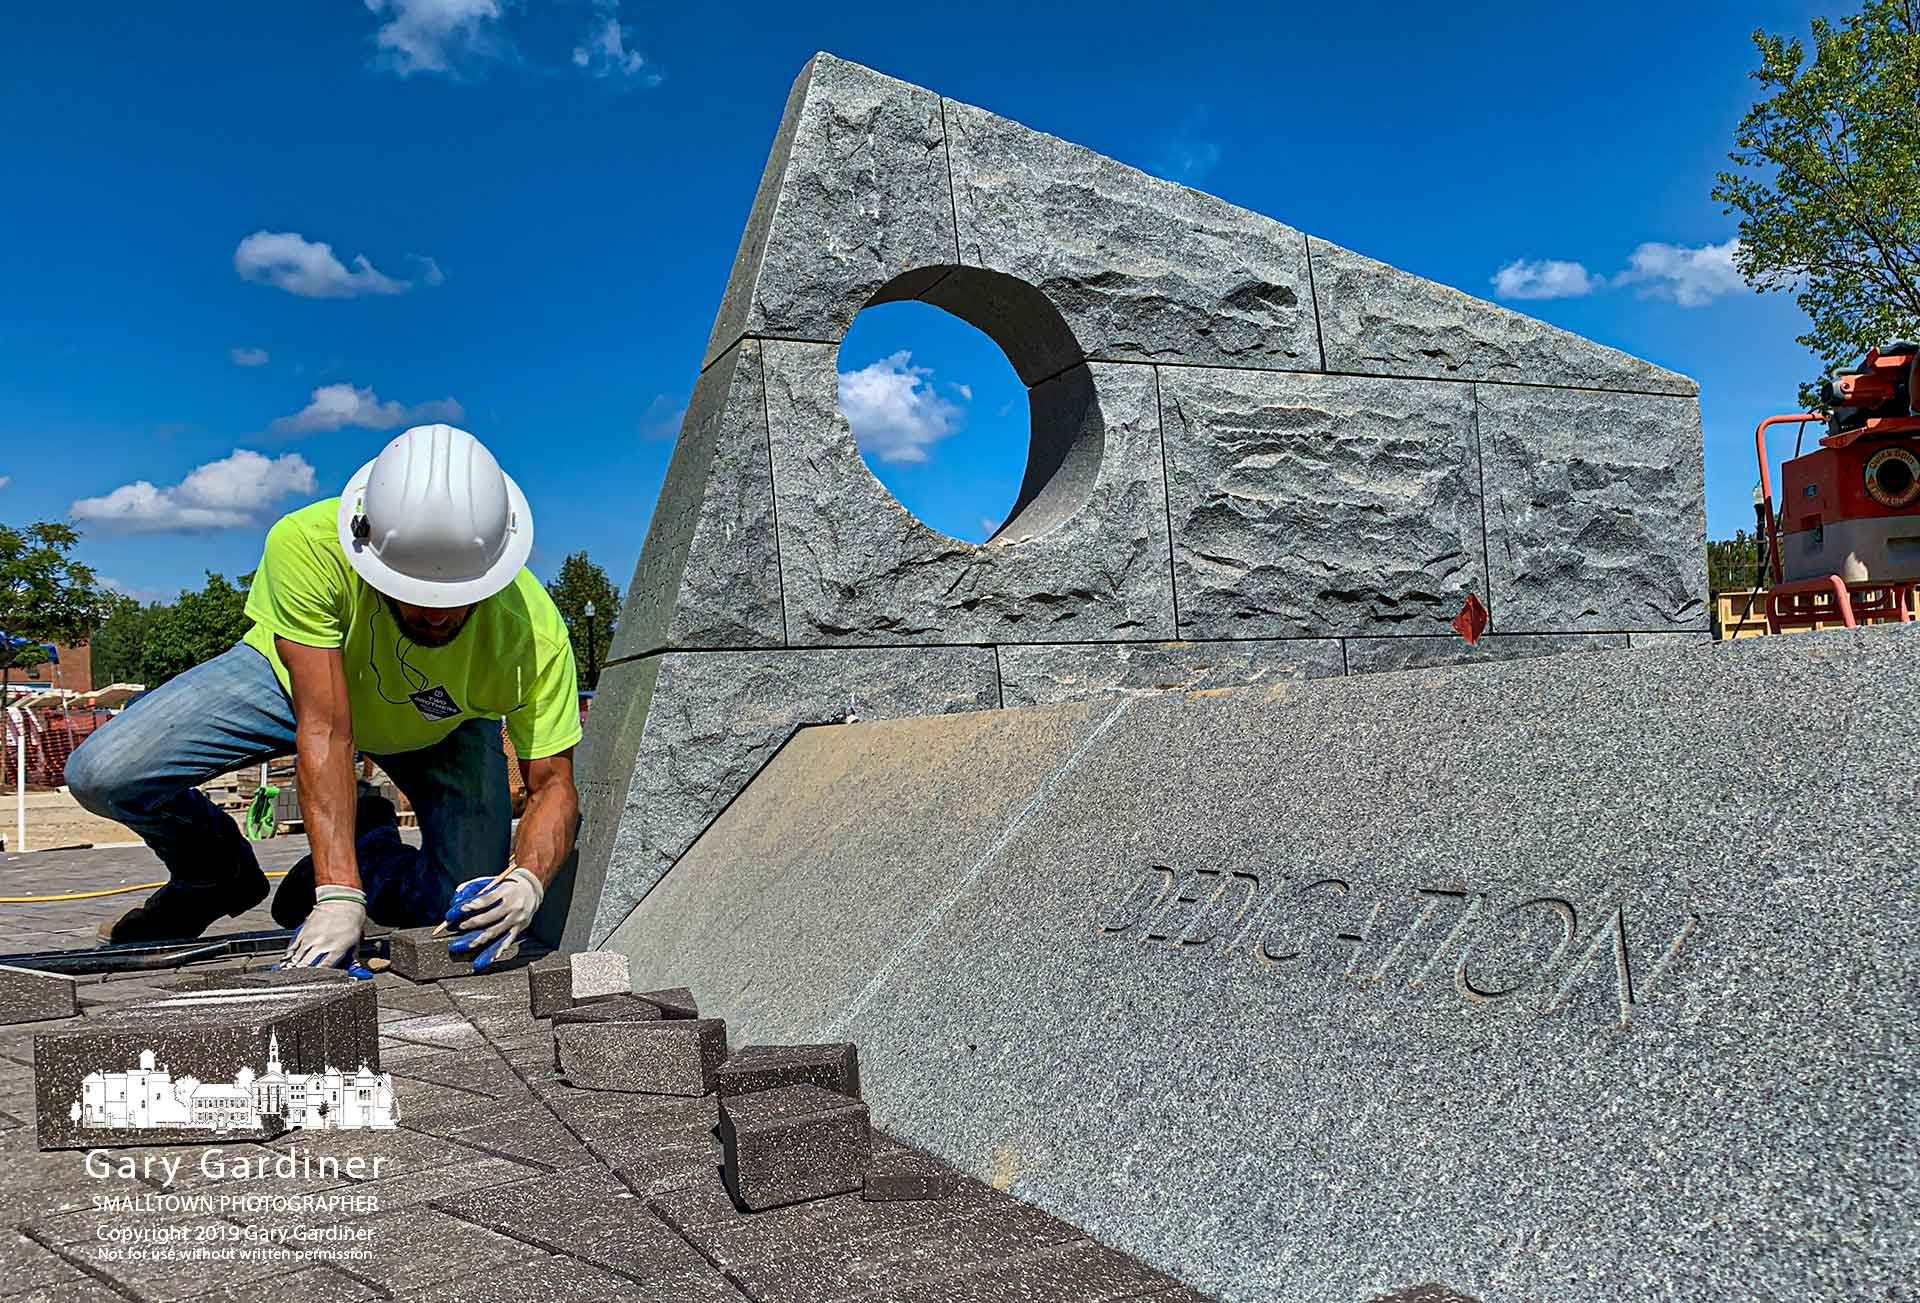 A brick mason measures a cut for one of the pavers being laid in the walkway of First Responders Park on West Main as the contractor continues changes in the park to expand the park and add the names of two police officers killed in the city. My Final Photo for Sept. 17, 2019.